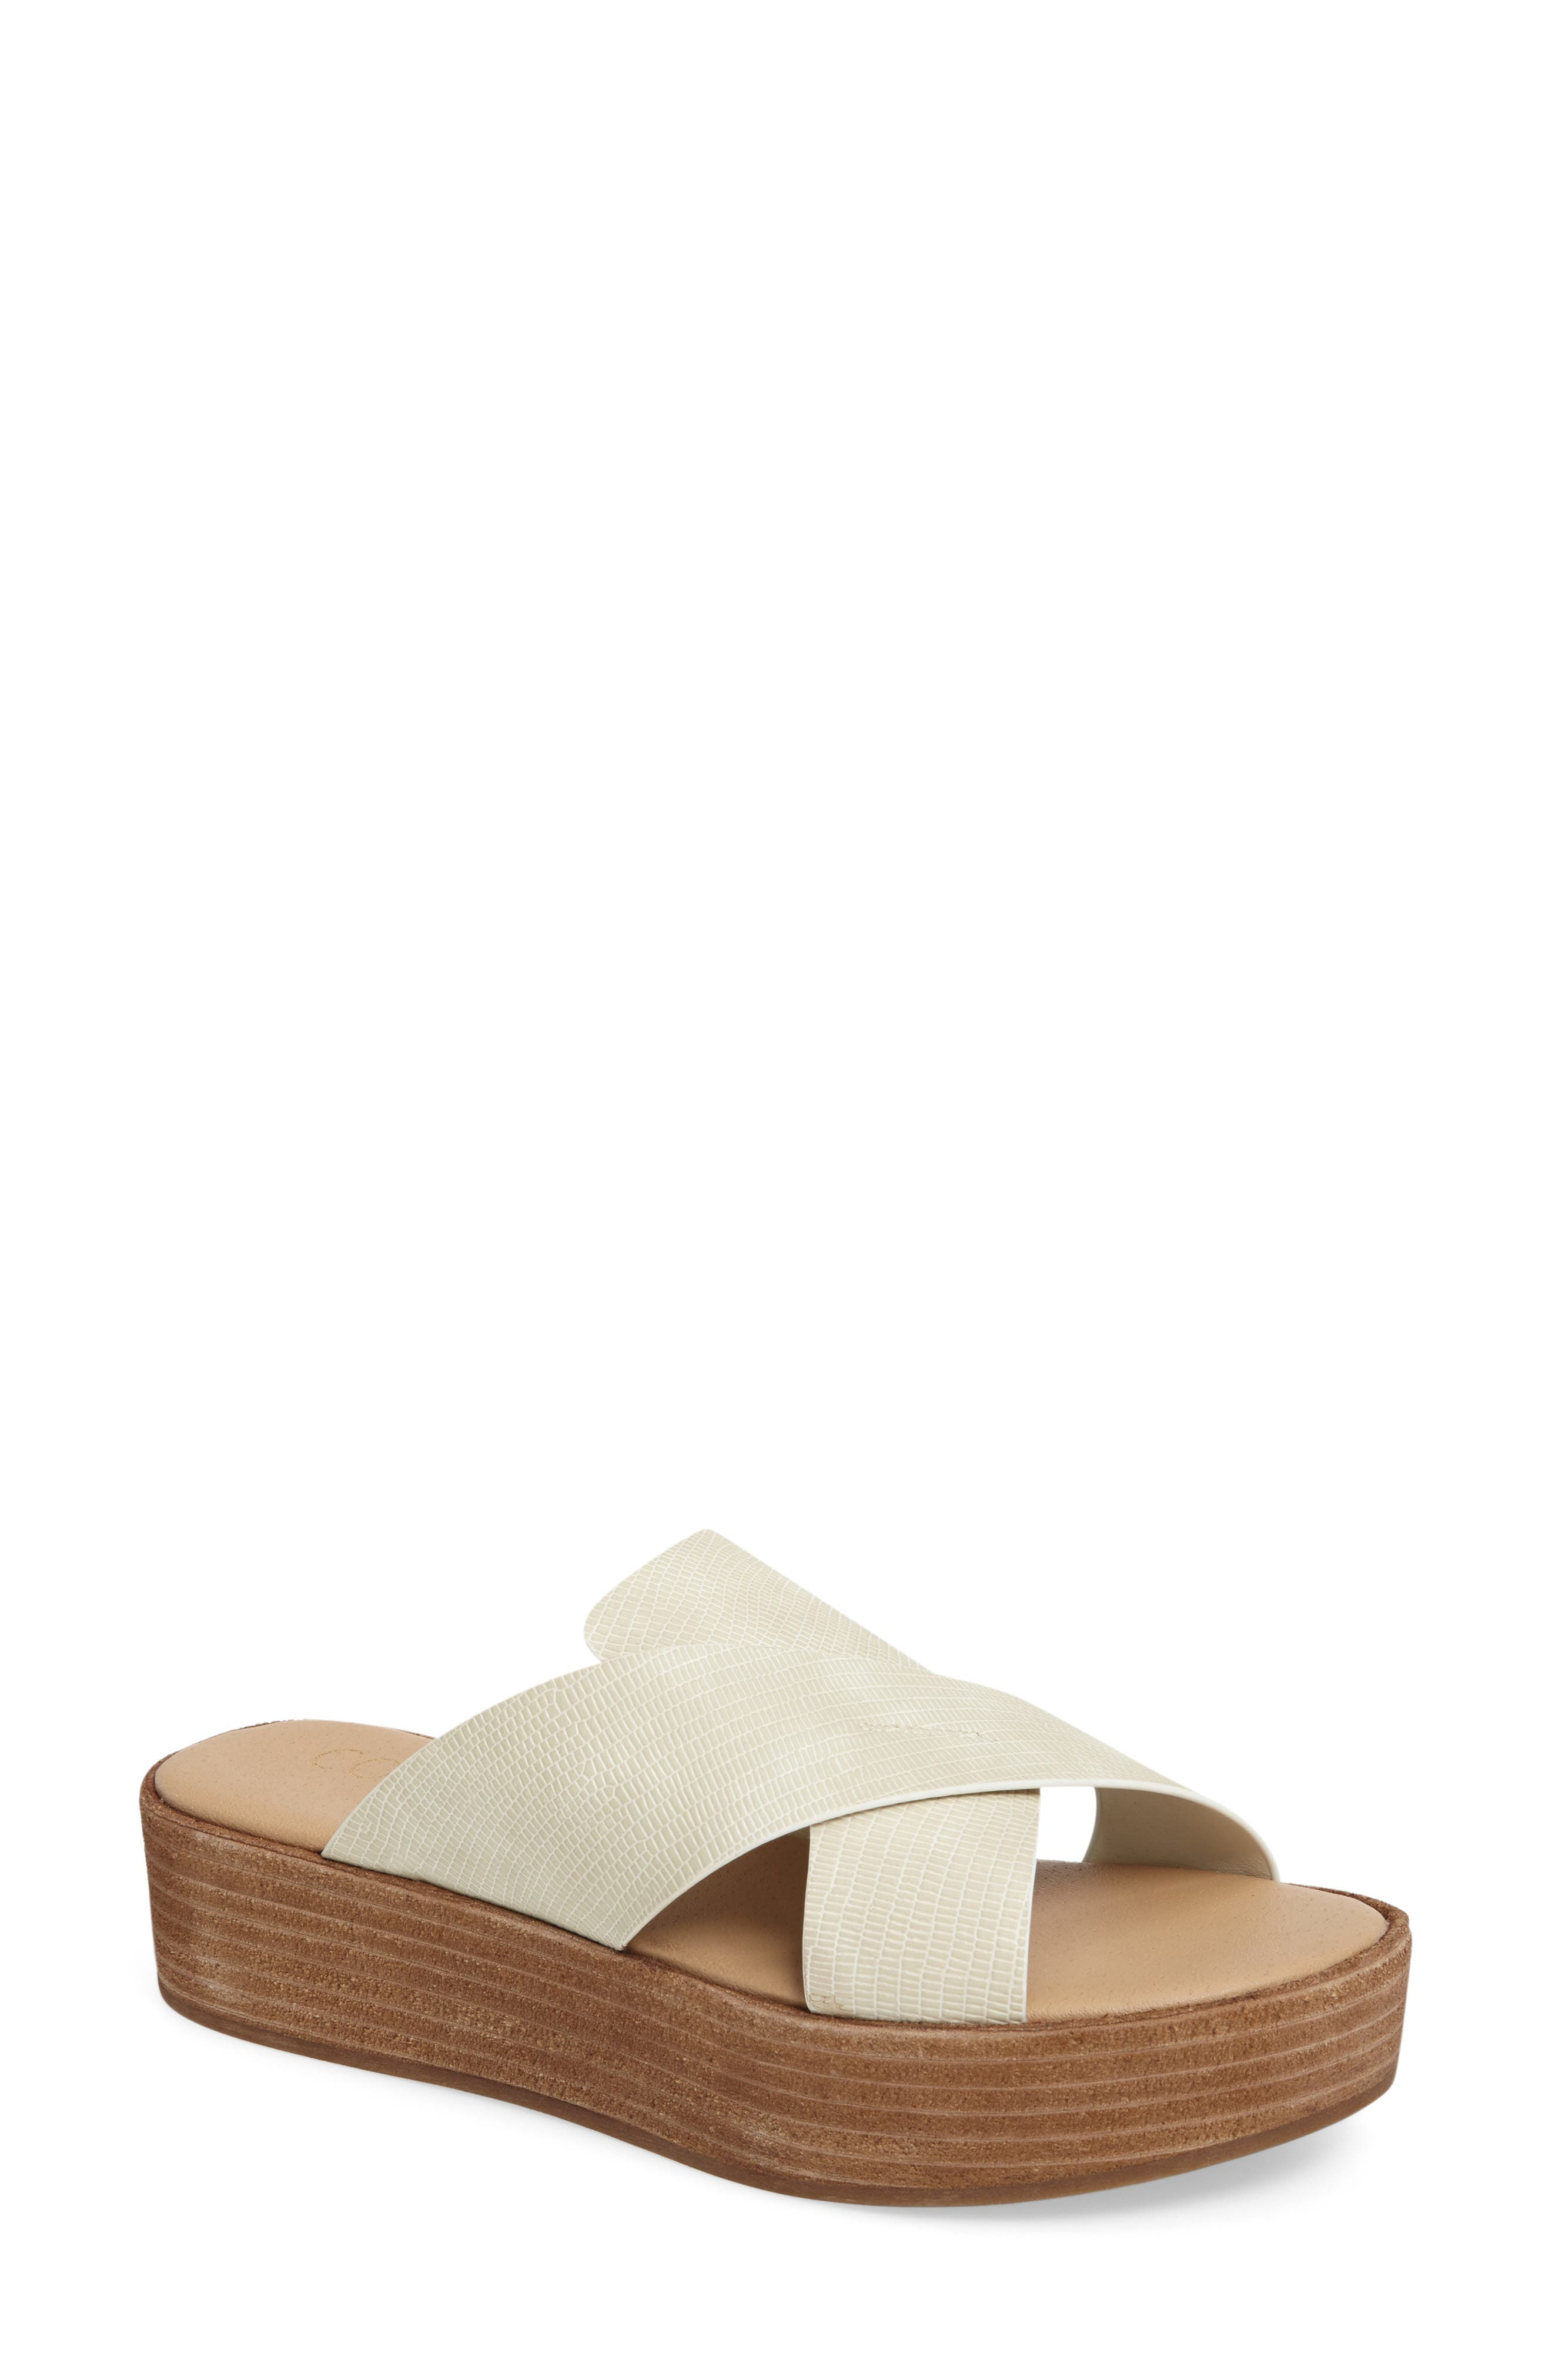 Coconuts by Matisse Masters Cross Strap Platform Sandal,                             Main thumbnail 1, color,                             White Leather